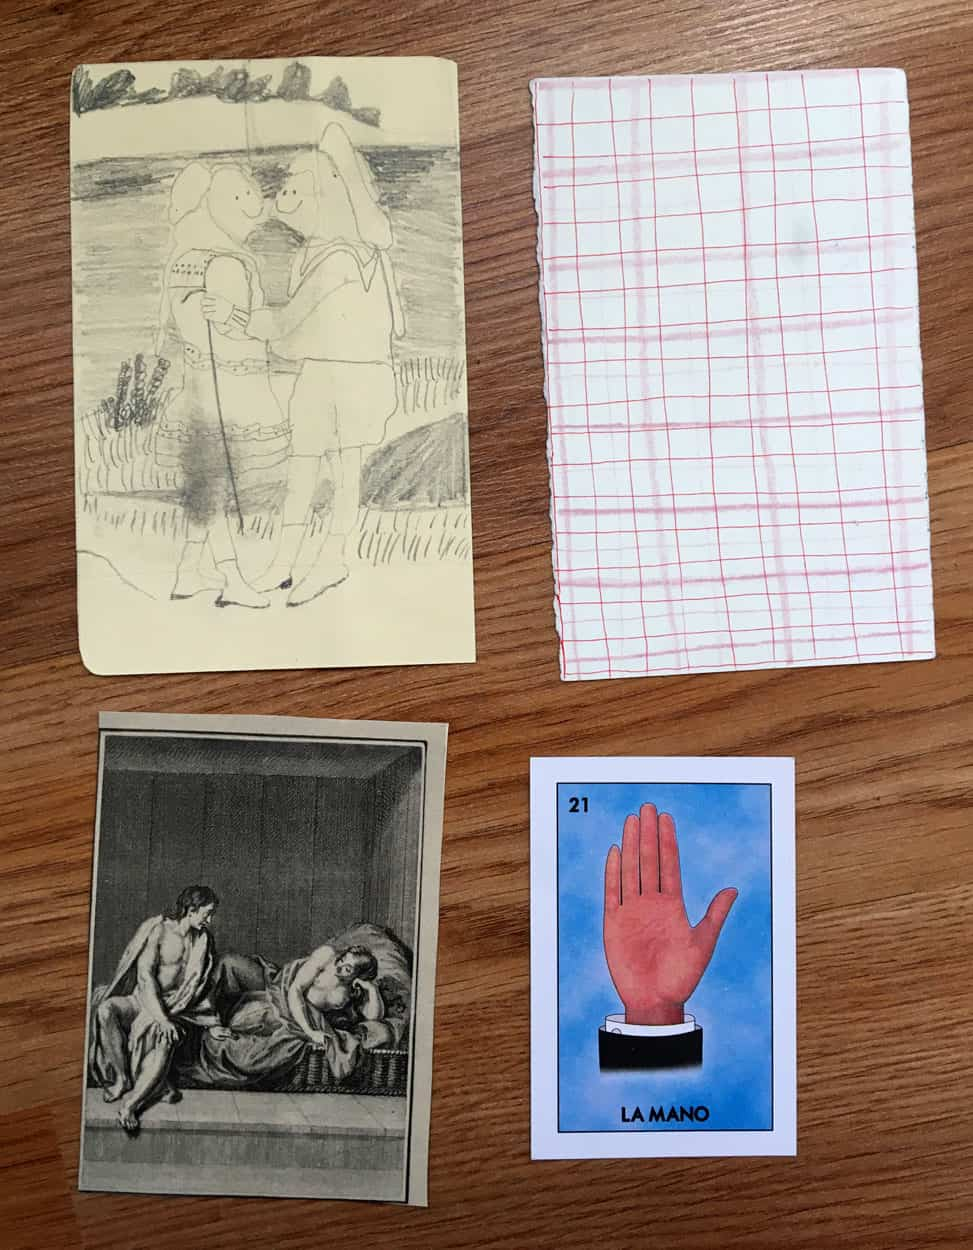 Graphite drawing reproduction of two figures, drawing reproduction of plaid, papers with loteria card and painting reproduction.